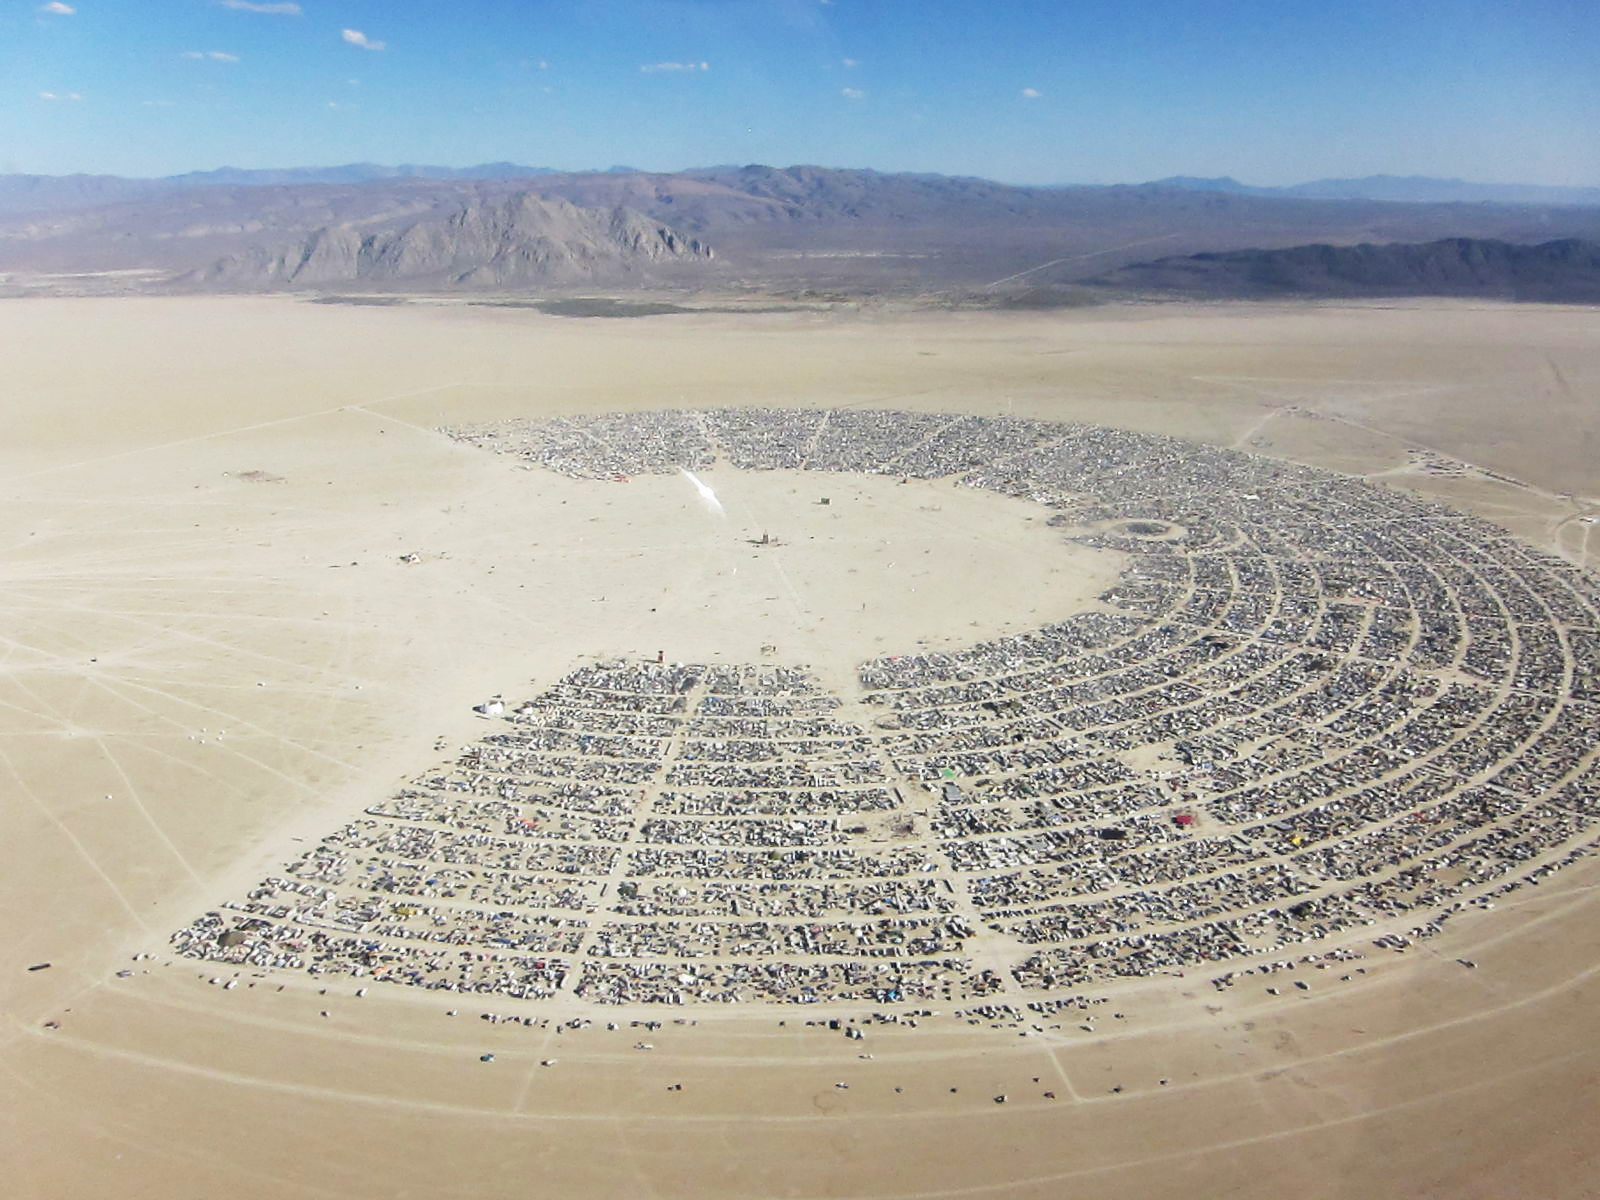 Aerial view of Burning man.